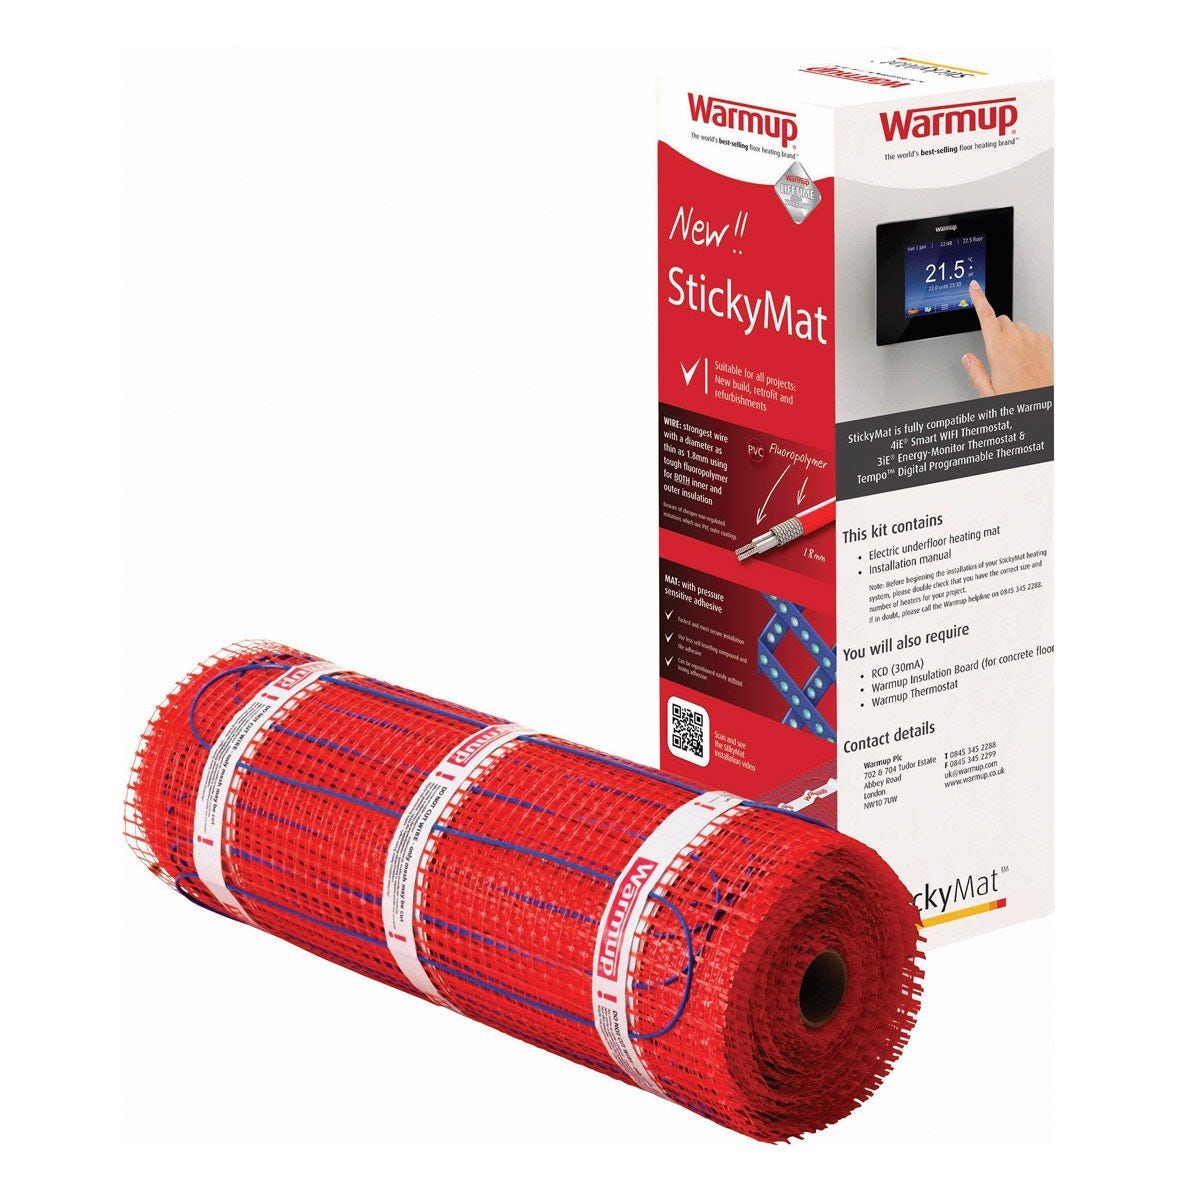 Warmup StickyMat underfloor heating mat 200w